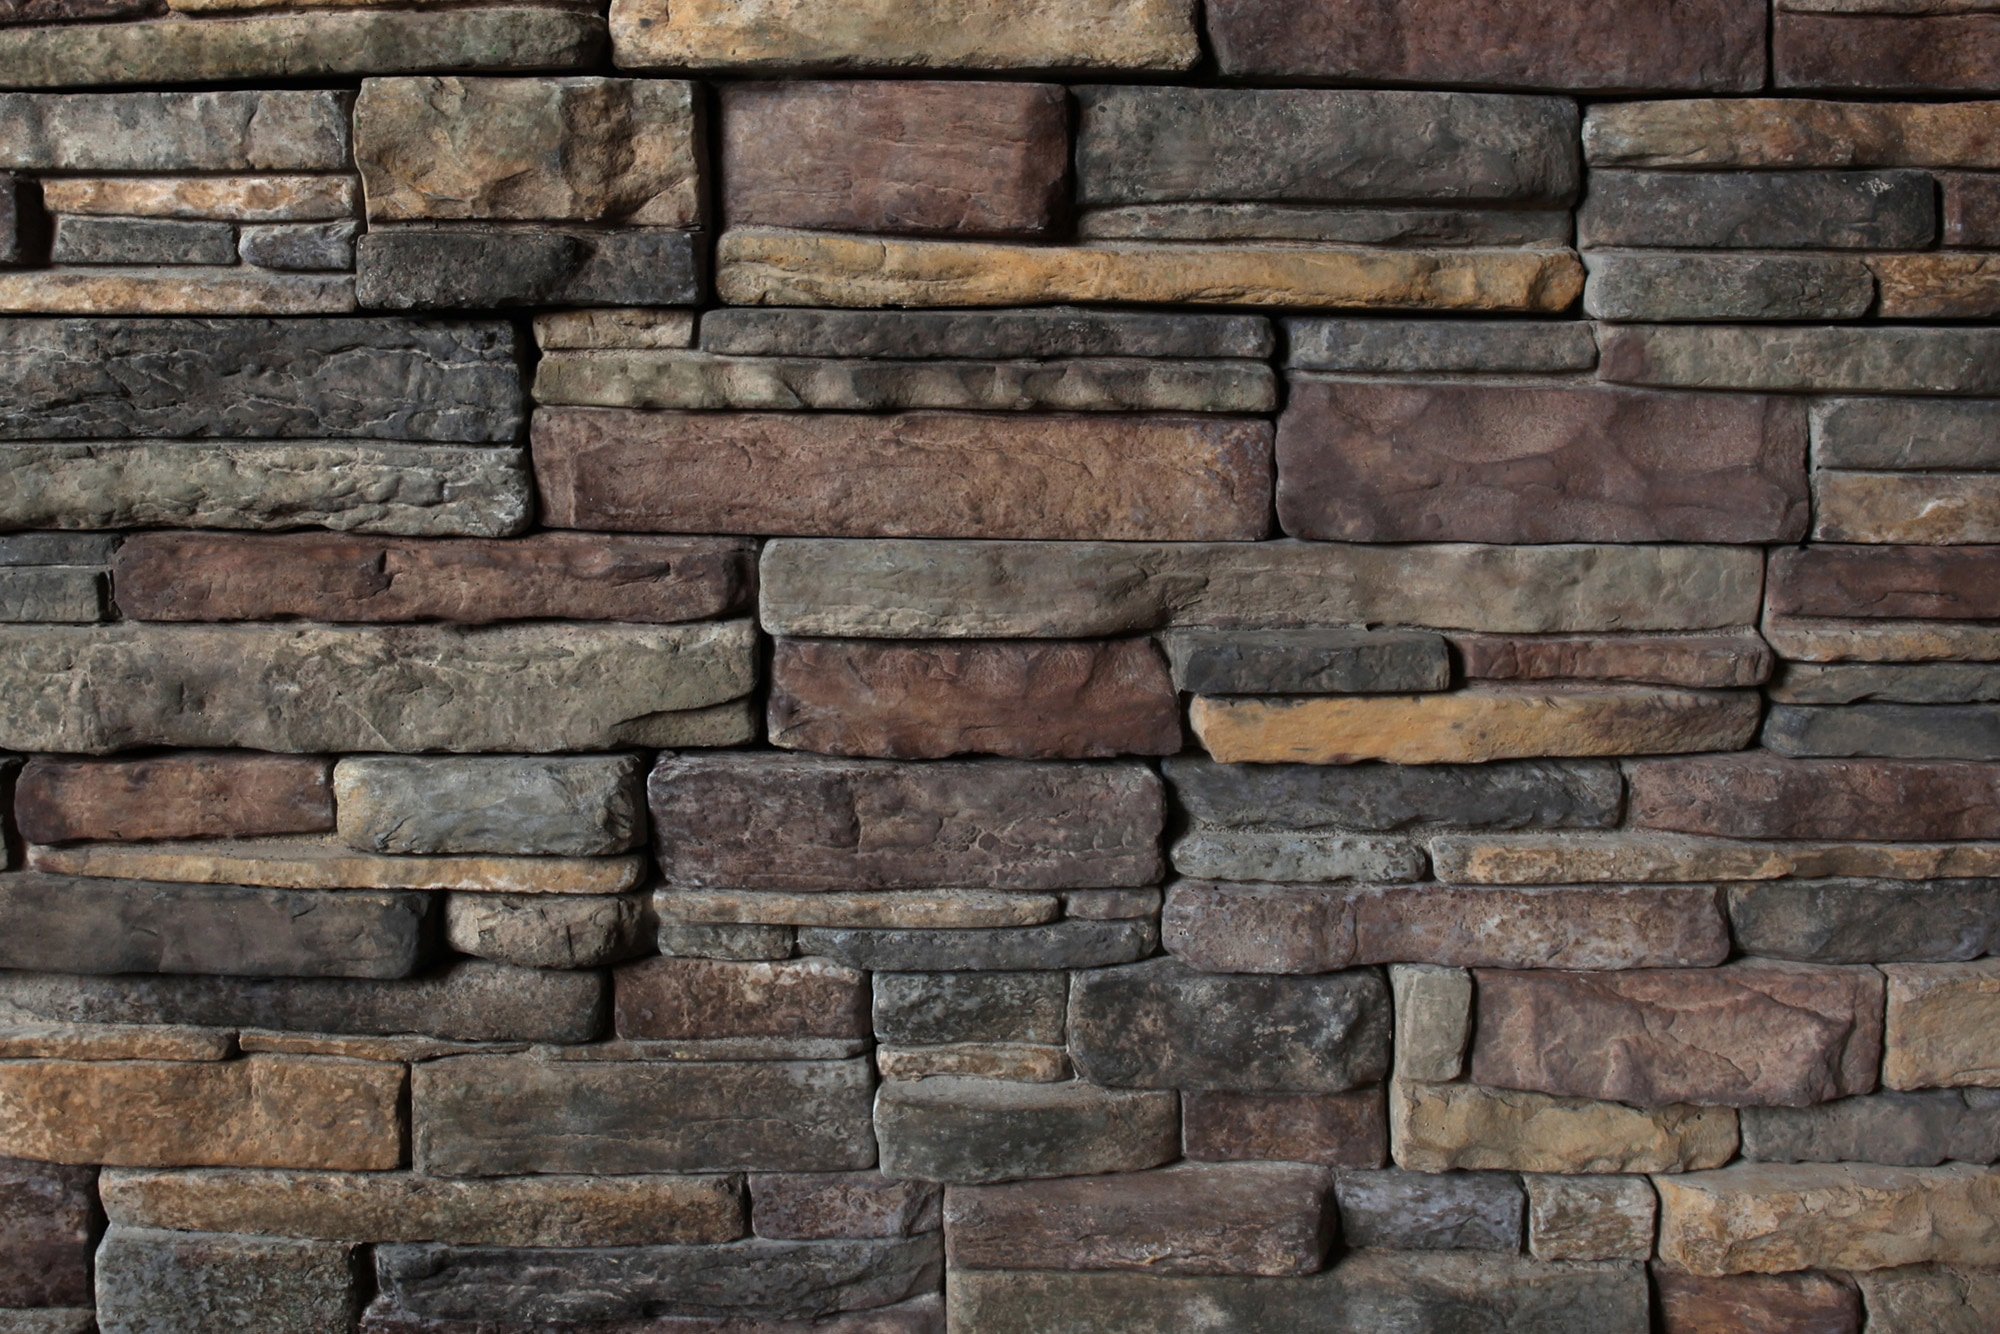 Kodiak mountain stone manufactured stone veneer ready for Stone facade siding